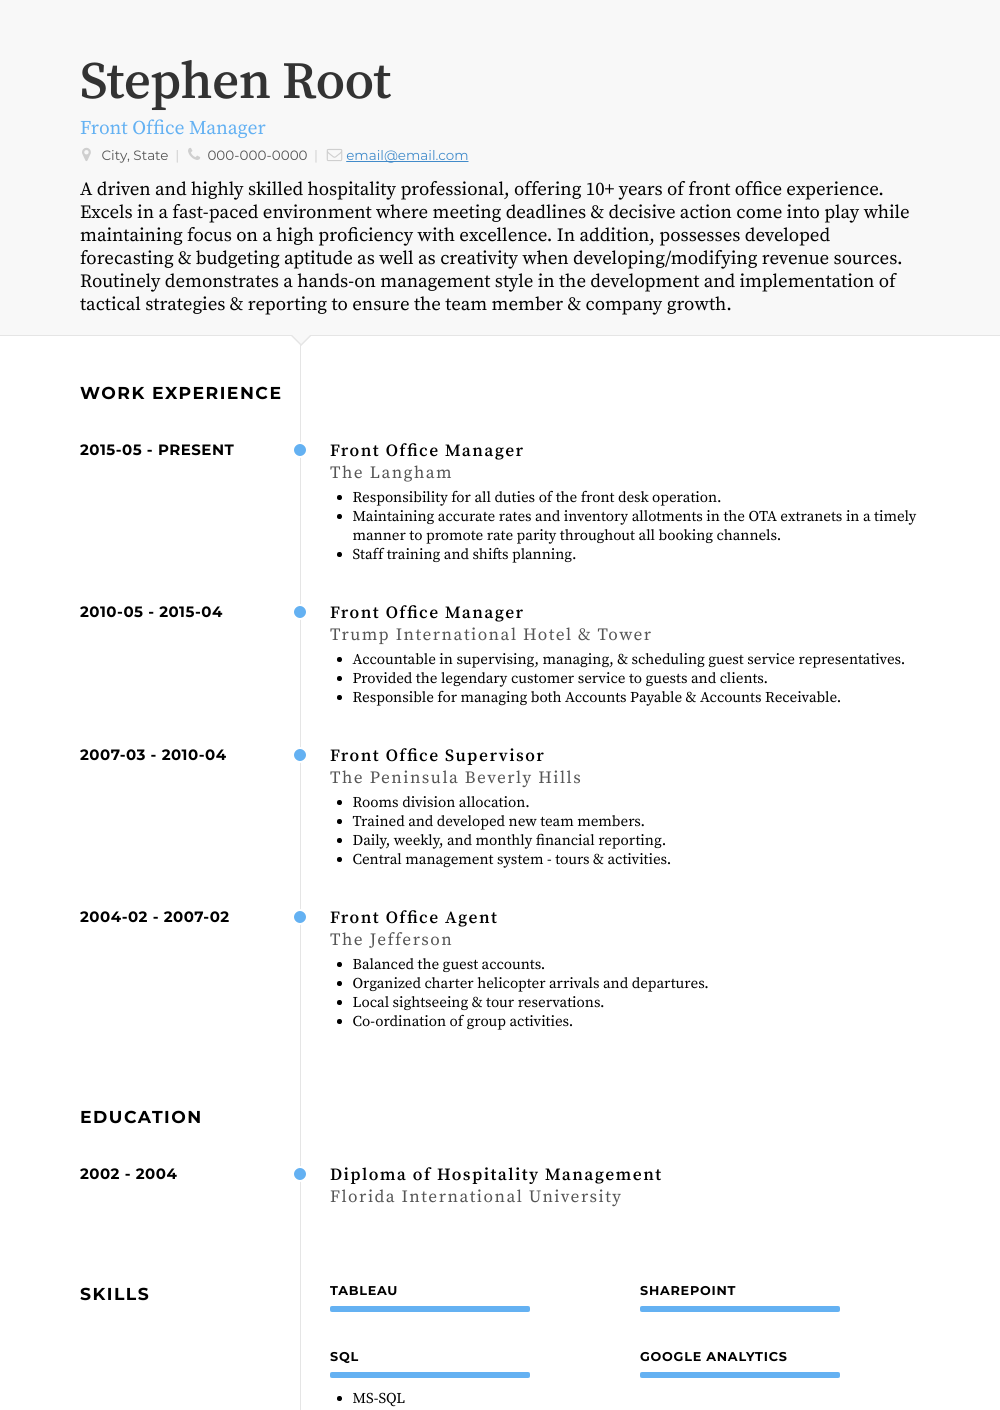 Front Office Manager Resume Sample and Template